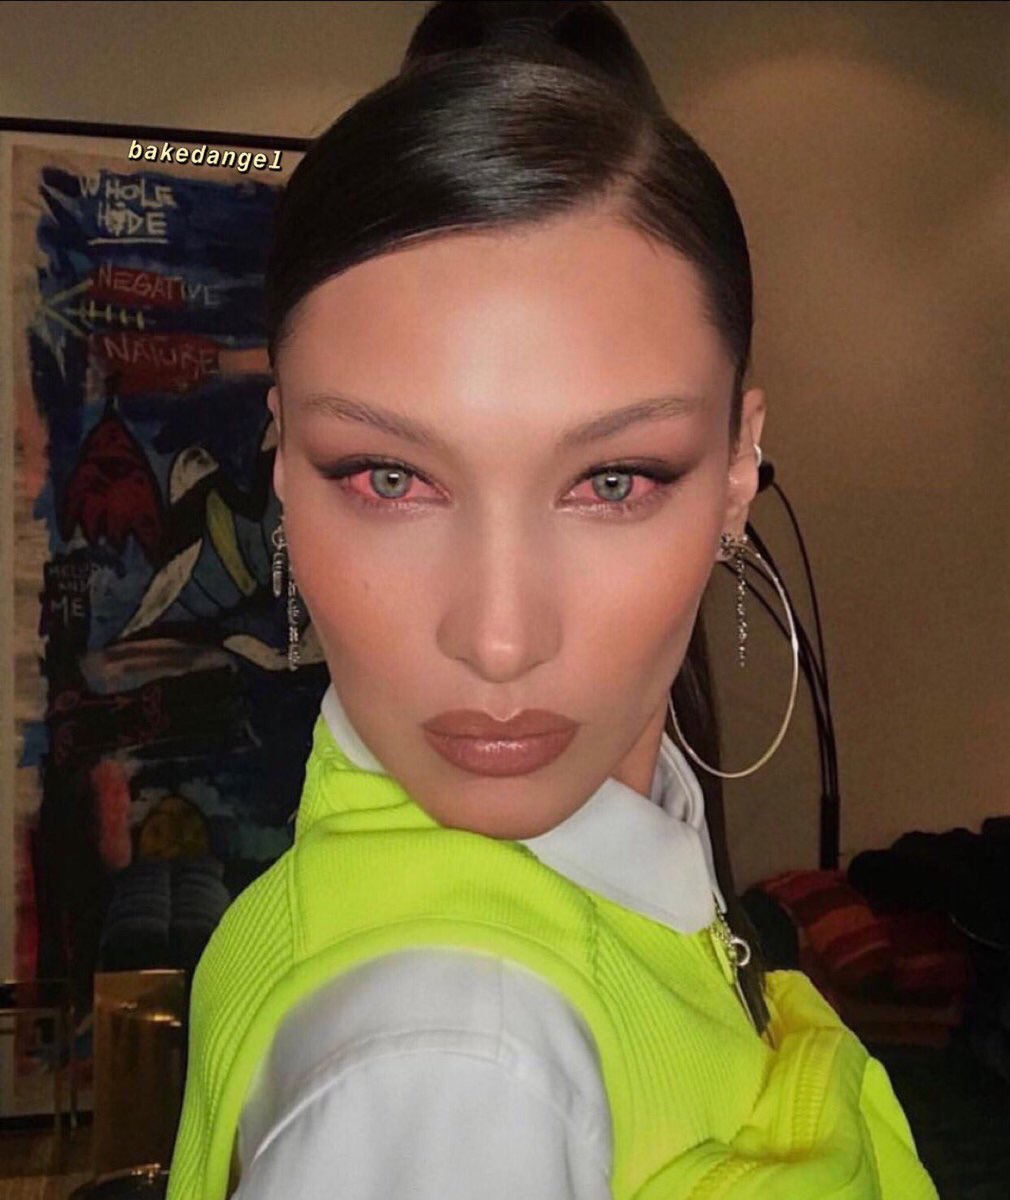 RT @bratzkilla: me serving face in the mirror after crying for three hours straight https://t.co/6jC4rKtDpE